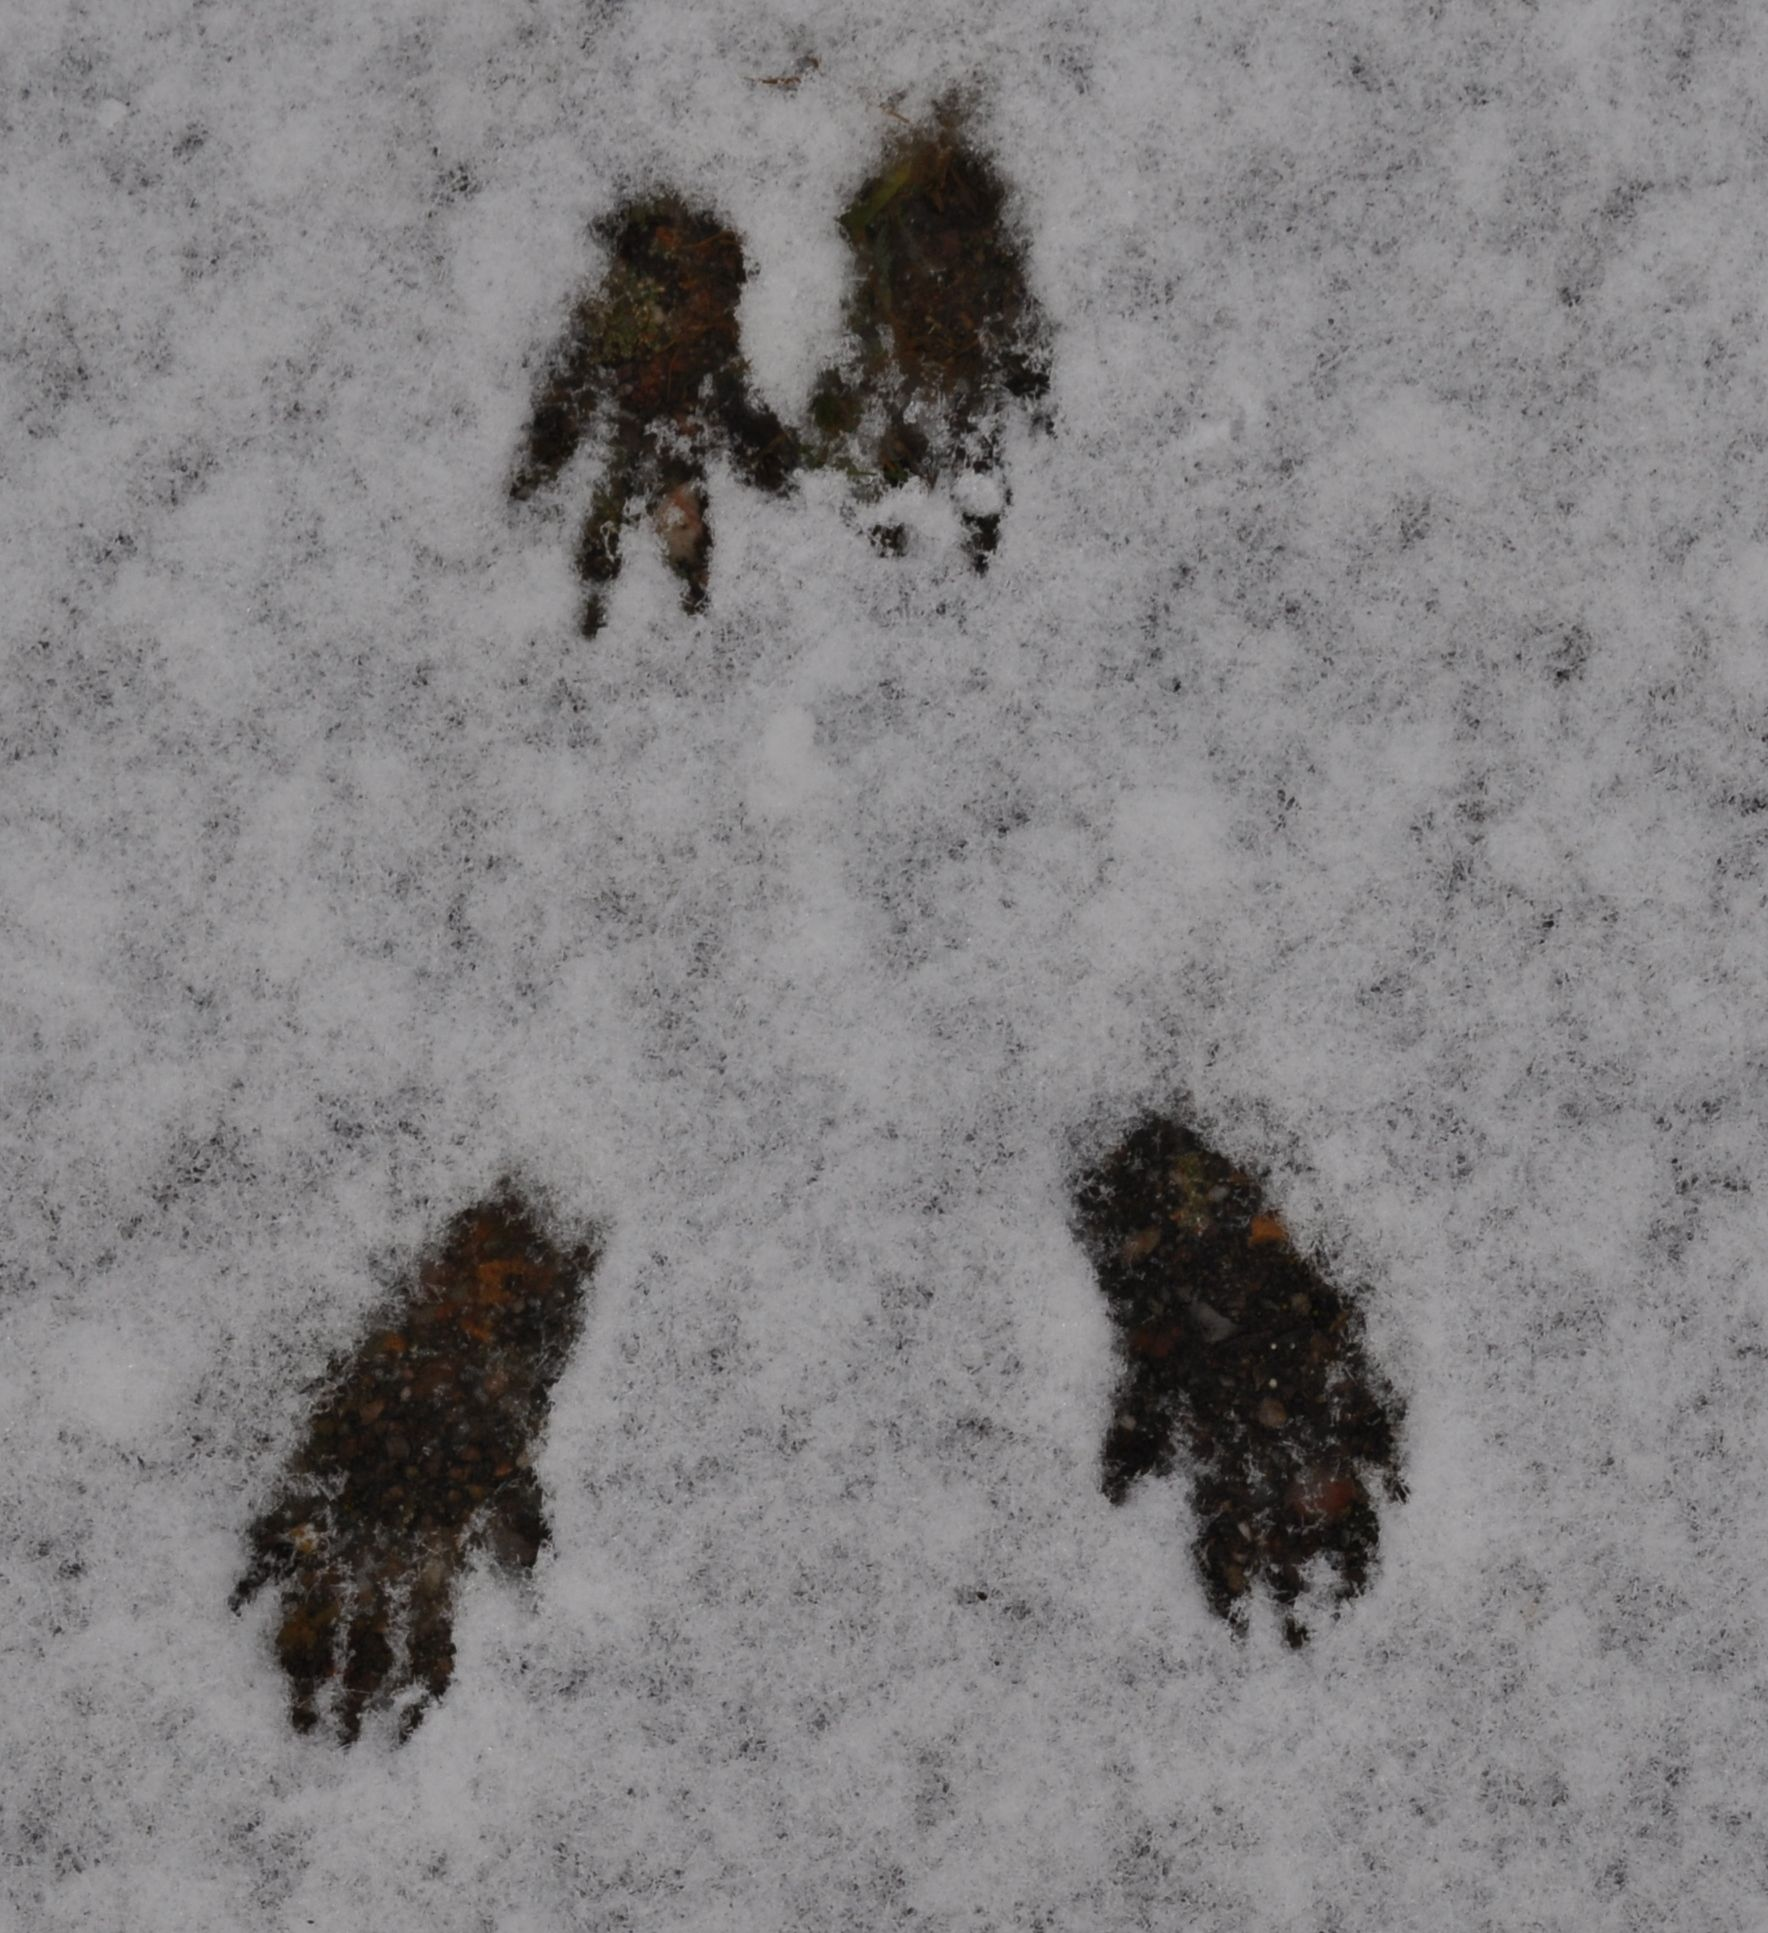 Squirrel Footprints In The Snow